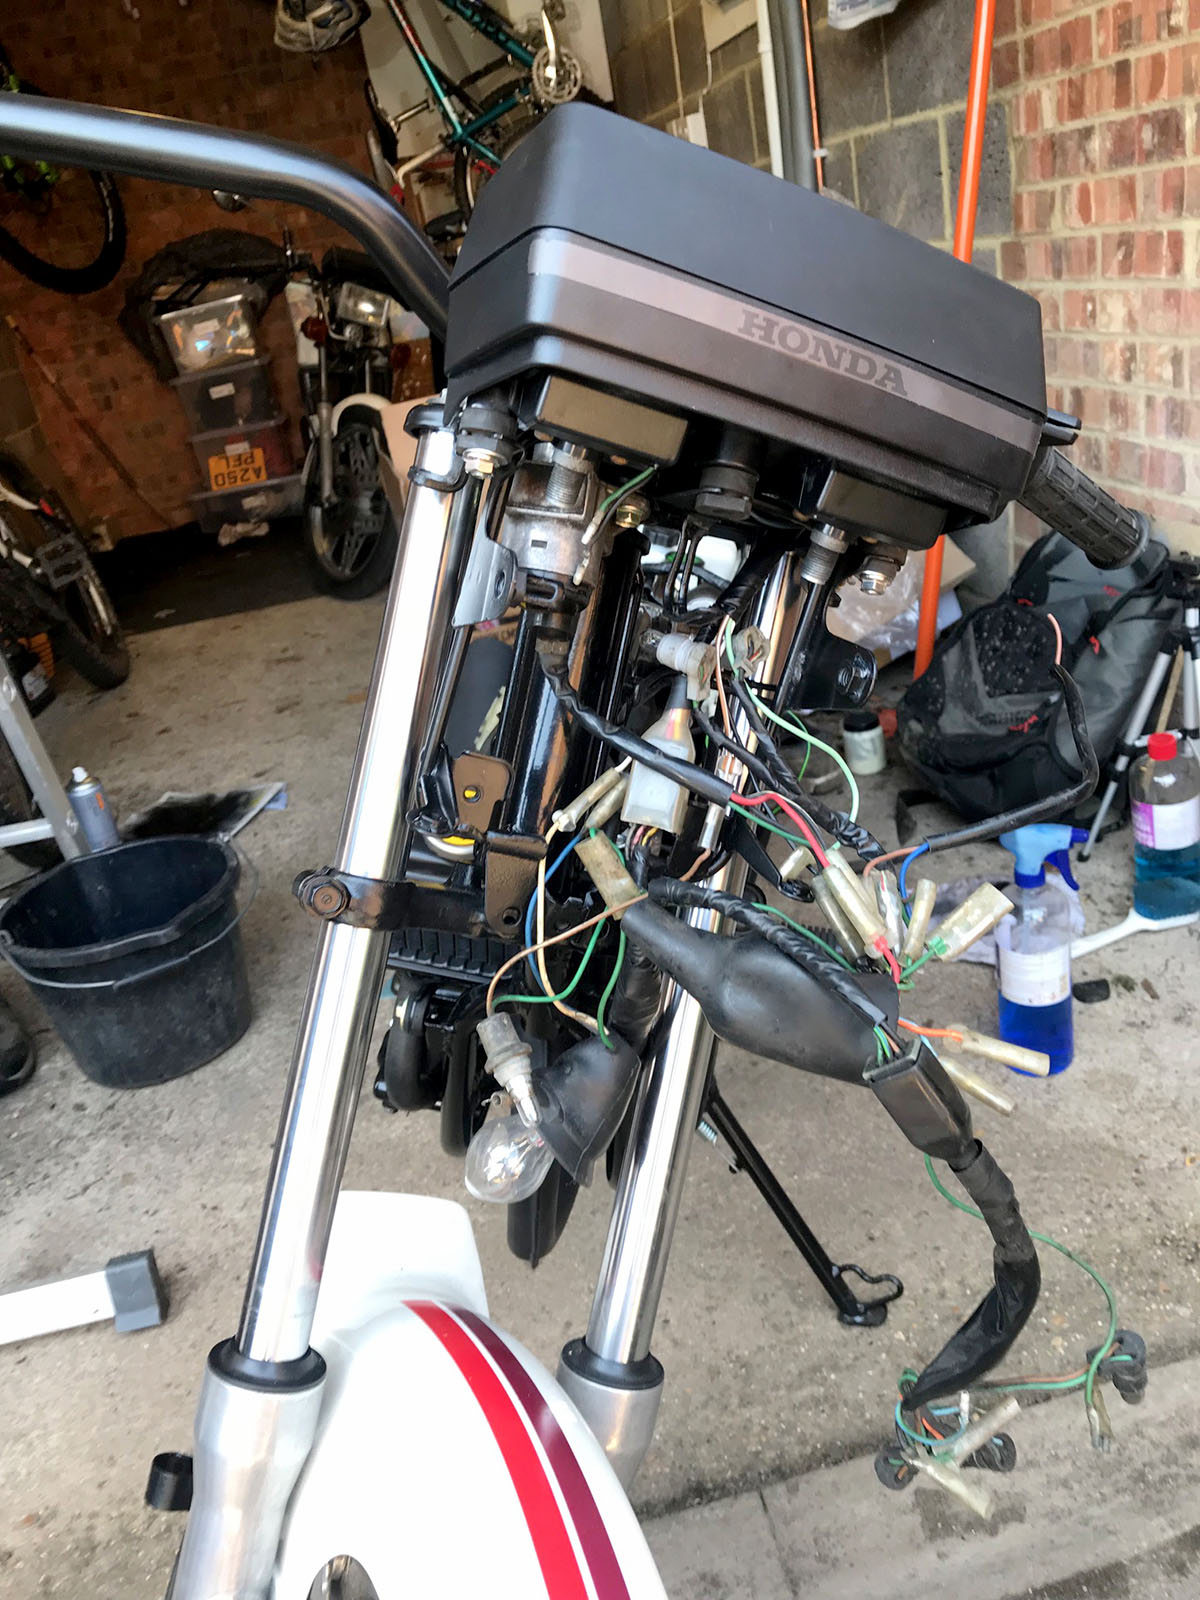 Honda Mbx80 Mt 50 Wiring Diagram Clocks Frame And Handle Bar On Now Where Was The